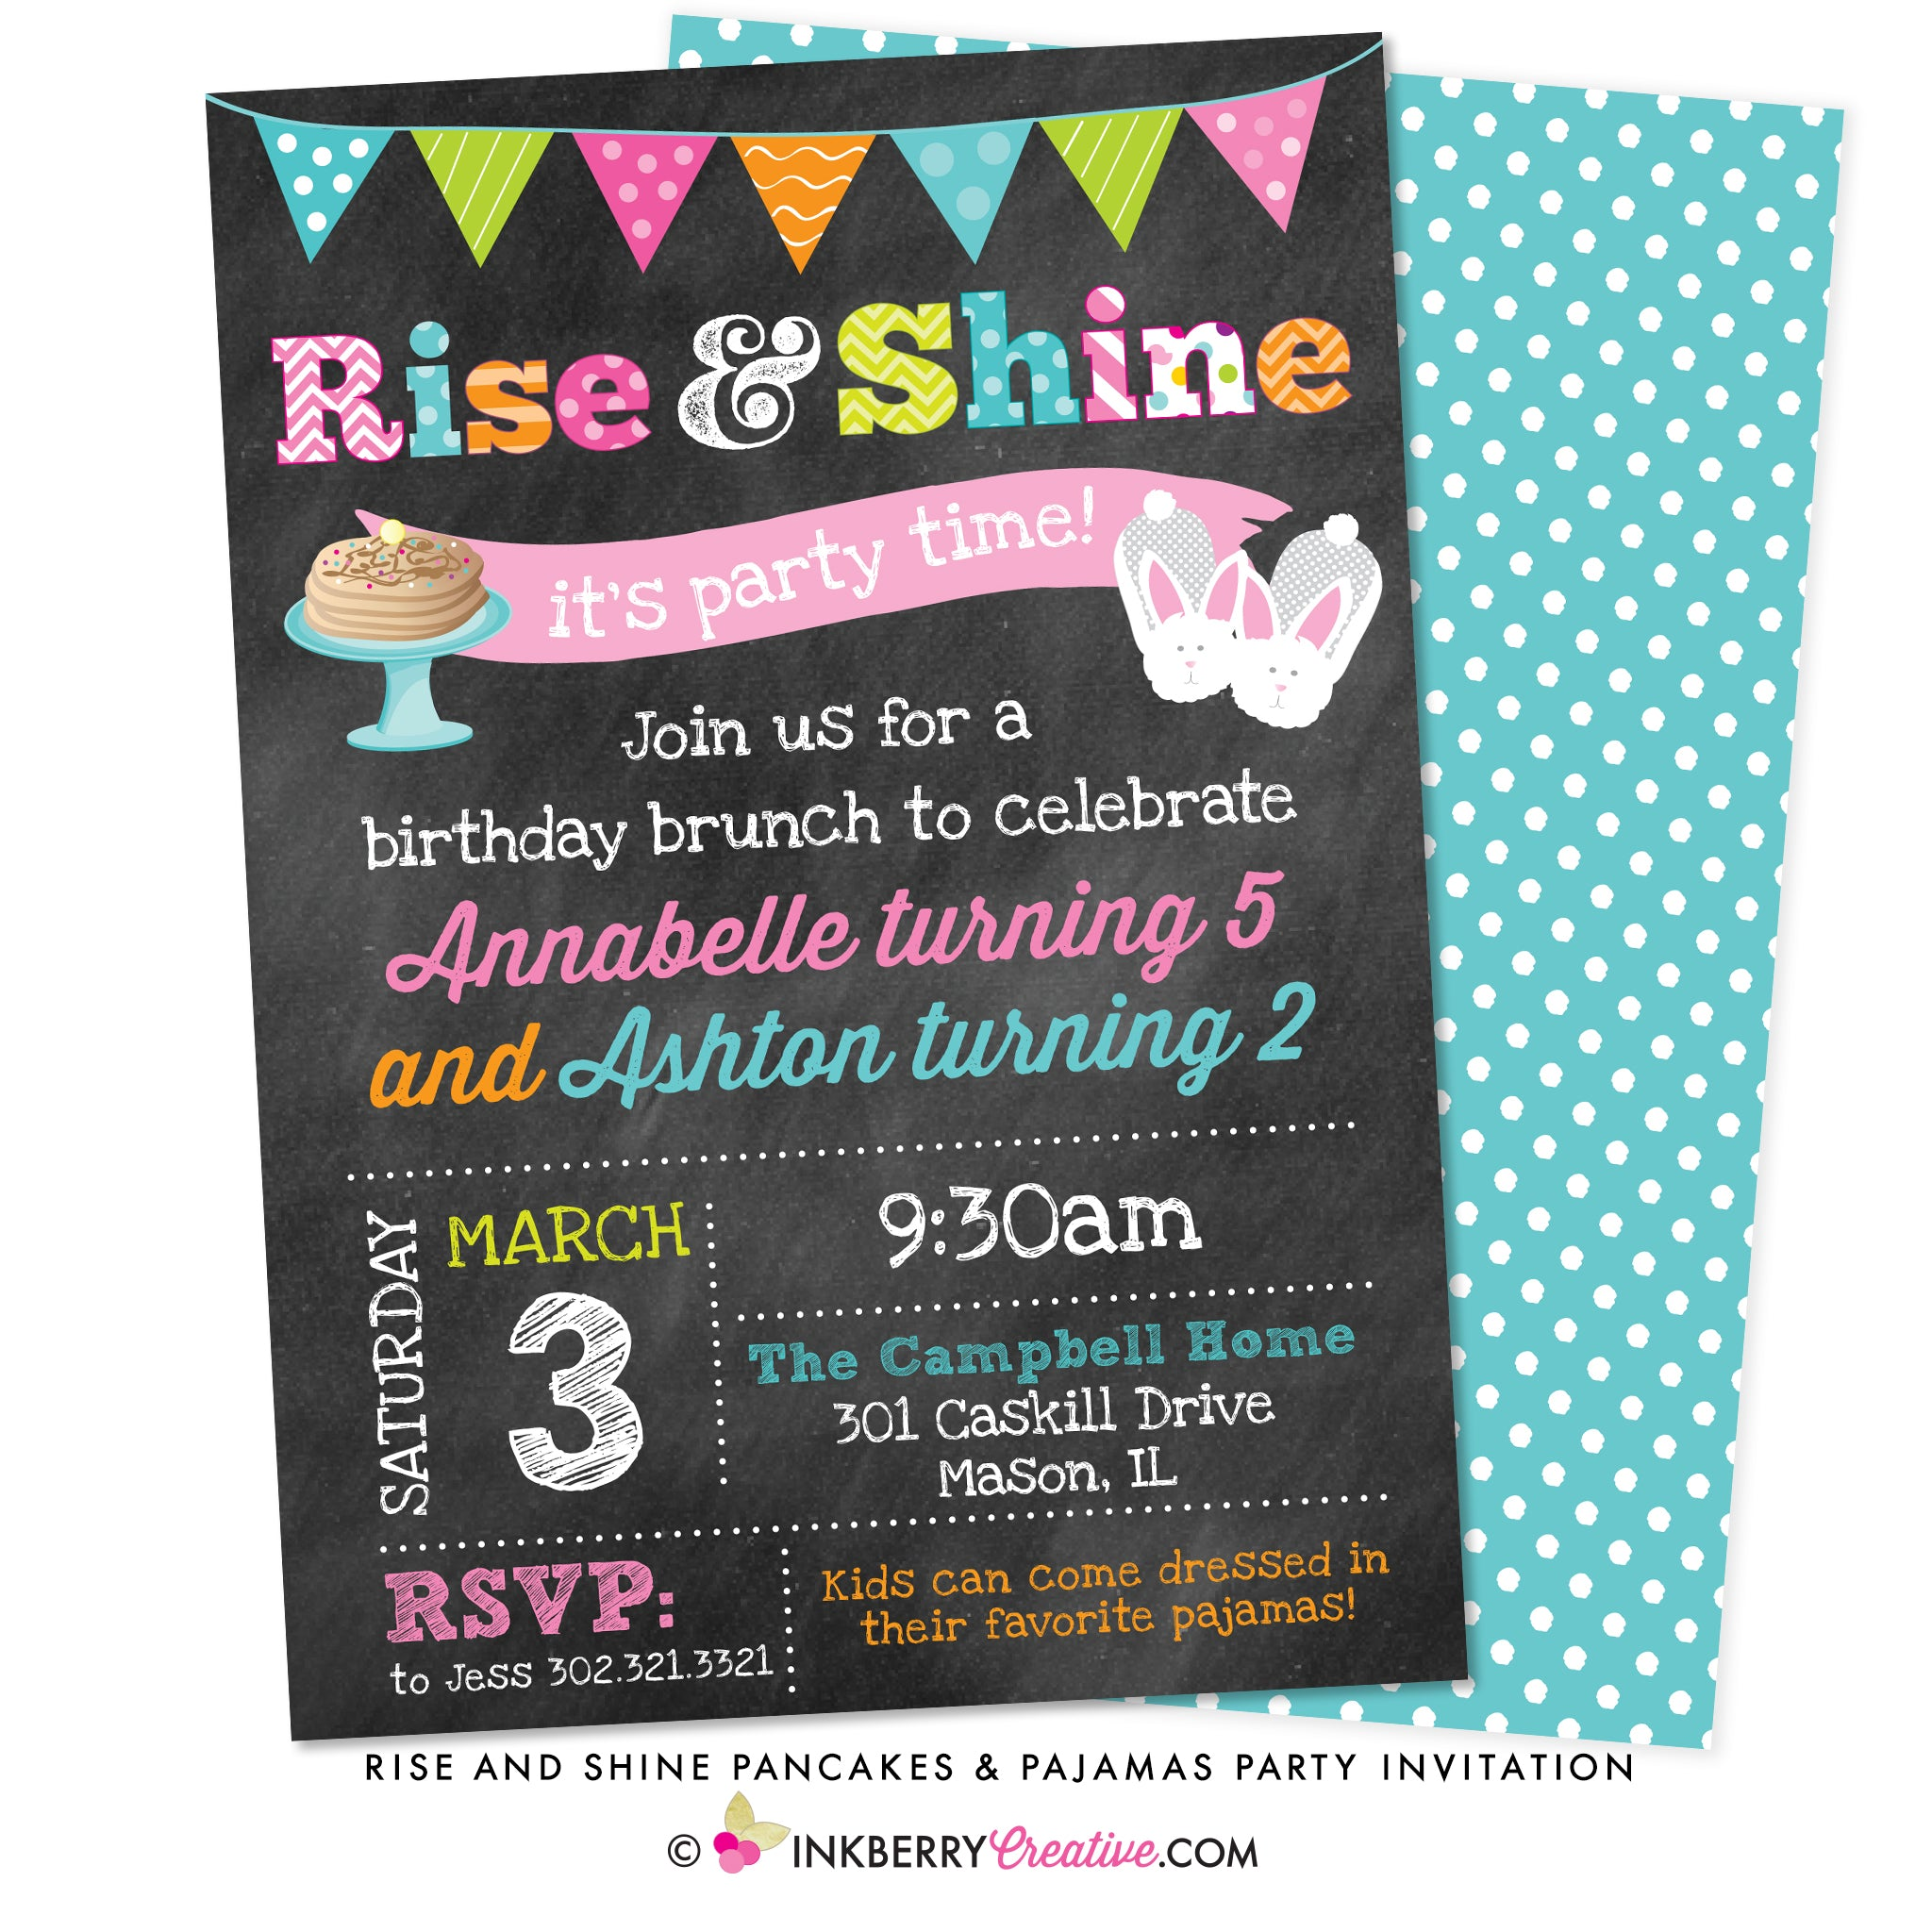 52426fc6062a Rise and Shine Pancakes and Pajamas Party Chalkboard Style ...